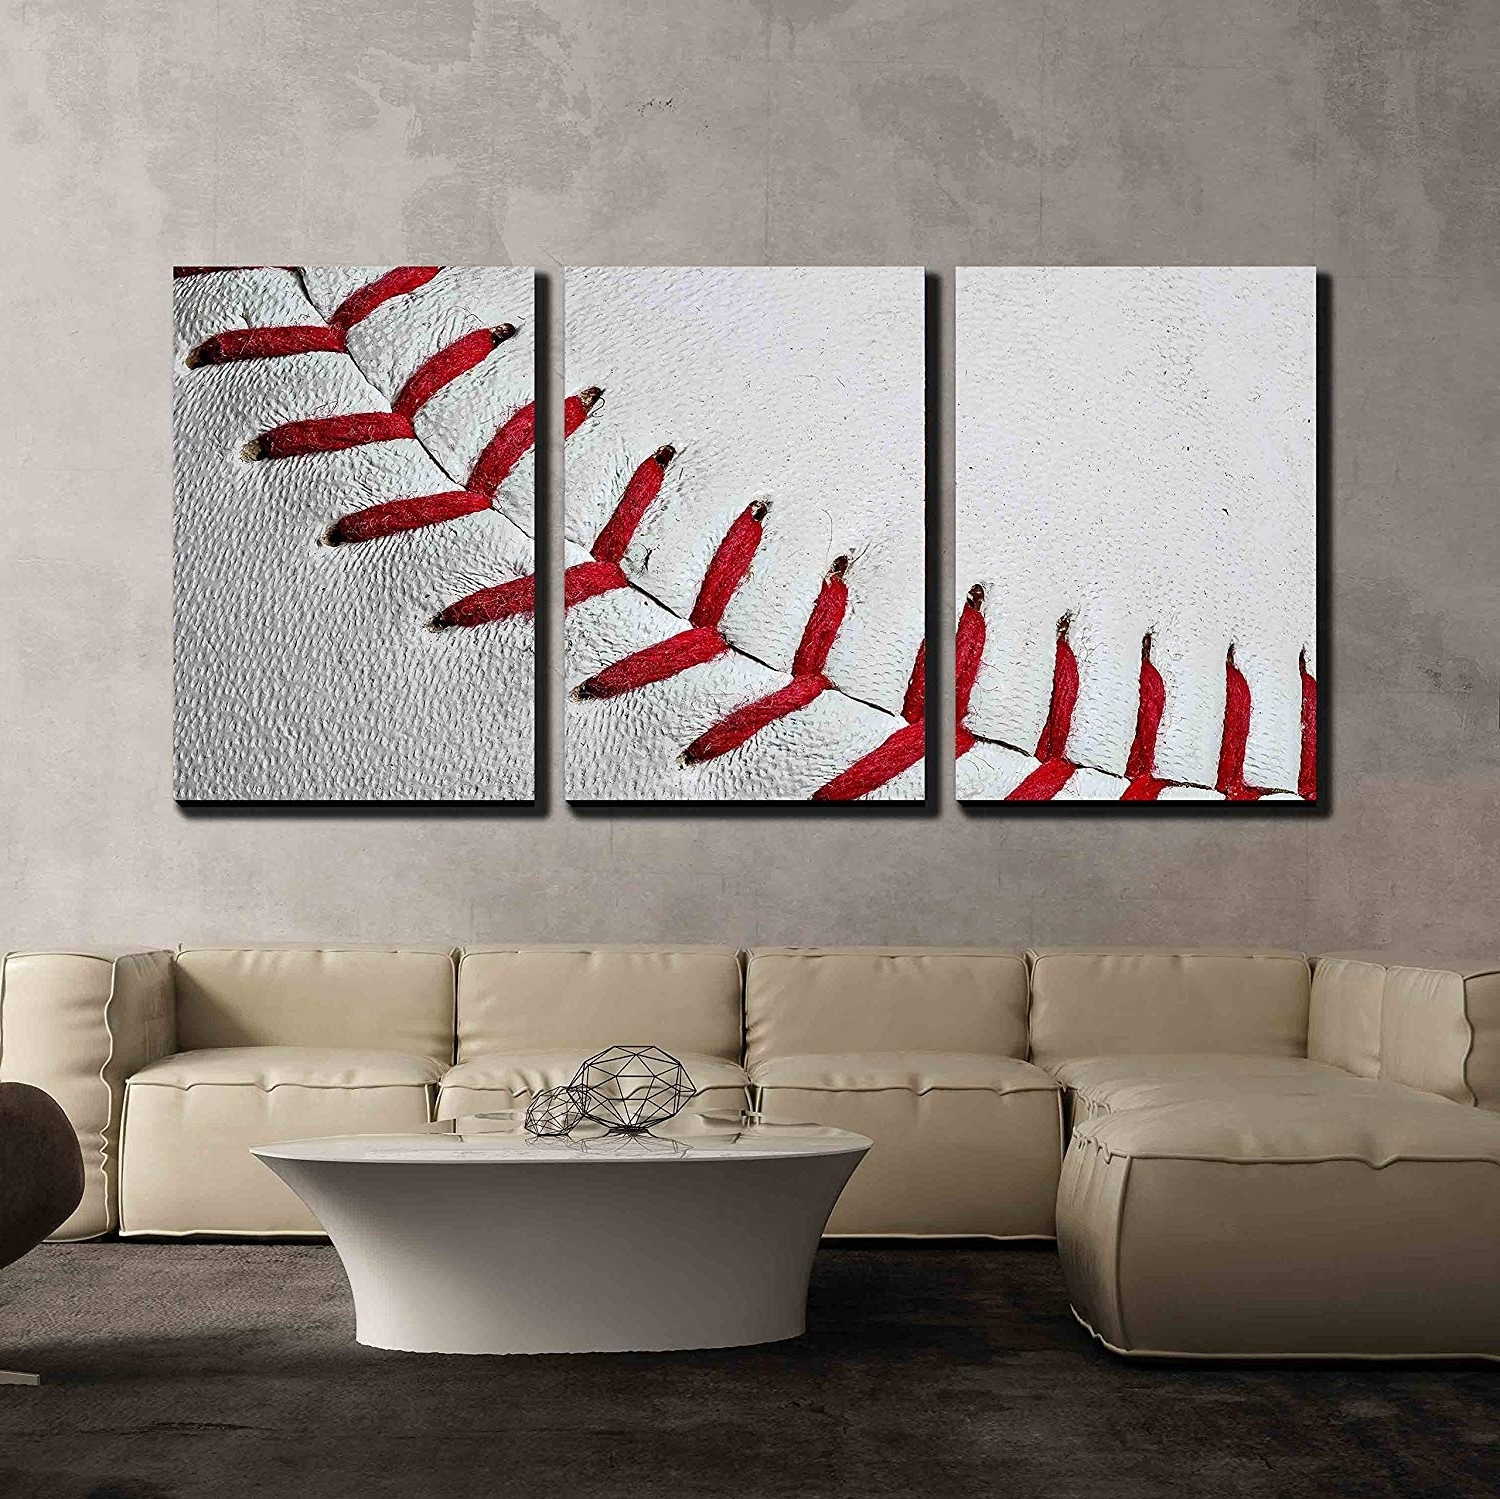 2018 Baseball Wall Art Intended For Amazon: Wall26 – 3 Piece Canvas Wall Art – Baseball Seams (Gallery 3 of 20)